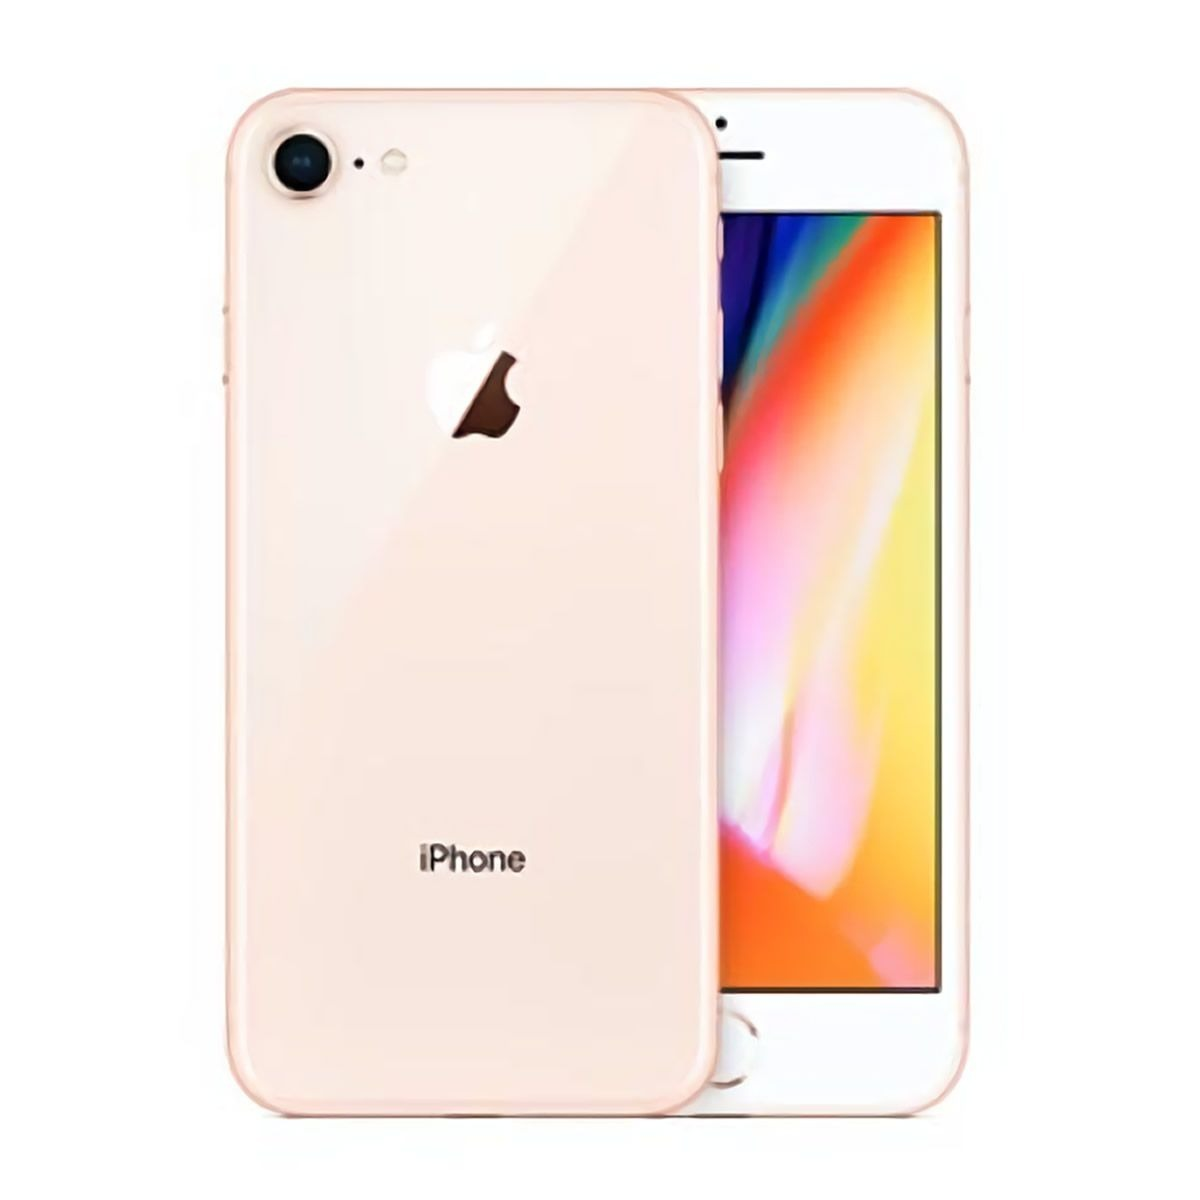 apple iphone 8 256 gb nuevos libre sellados nacional 16 en mercado libre. Black Bedroom Furniture Sets. Home Design Ideas